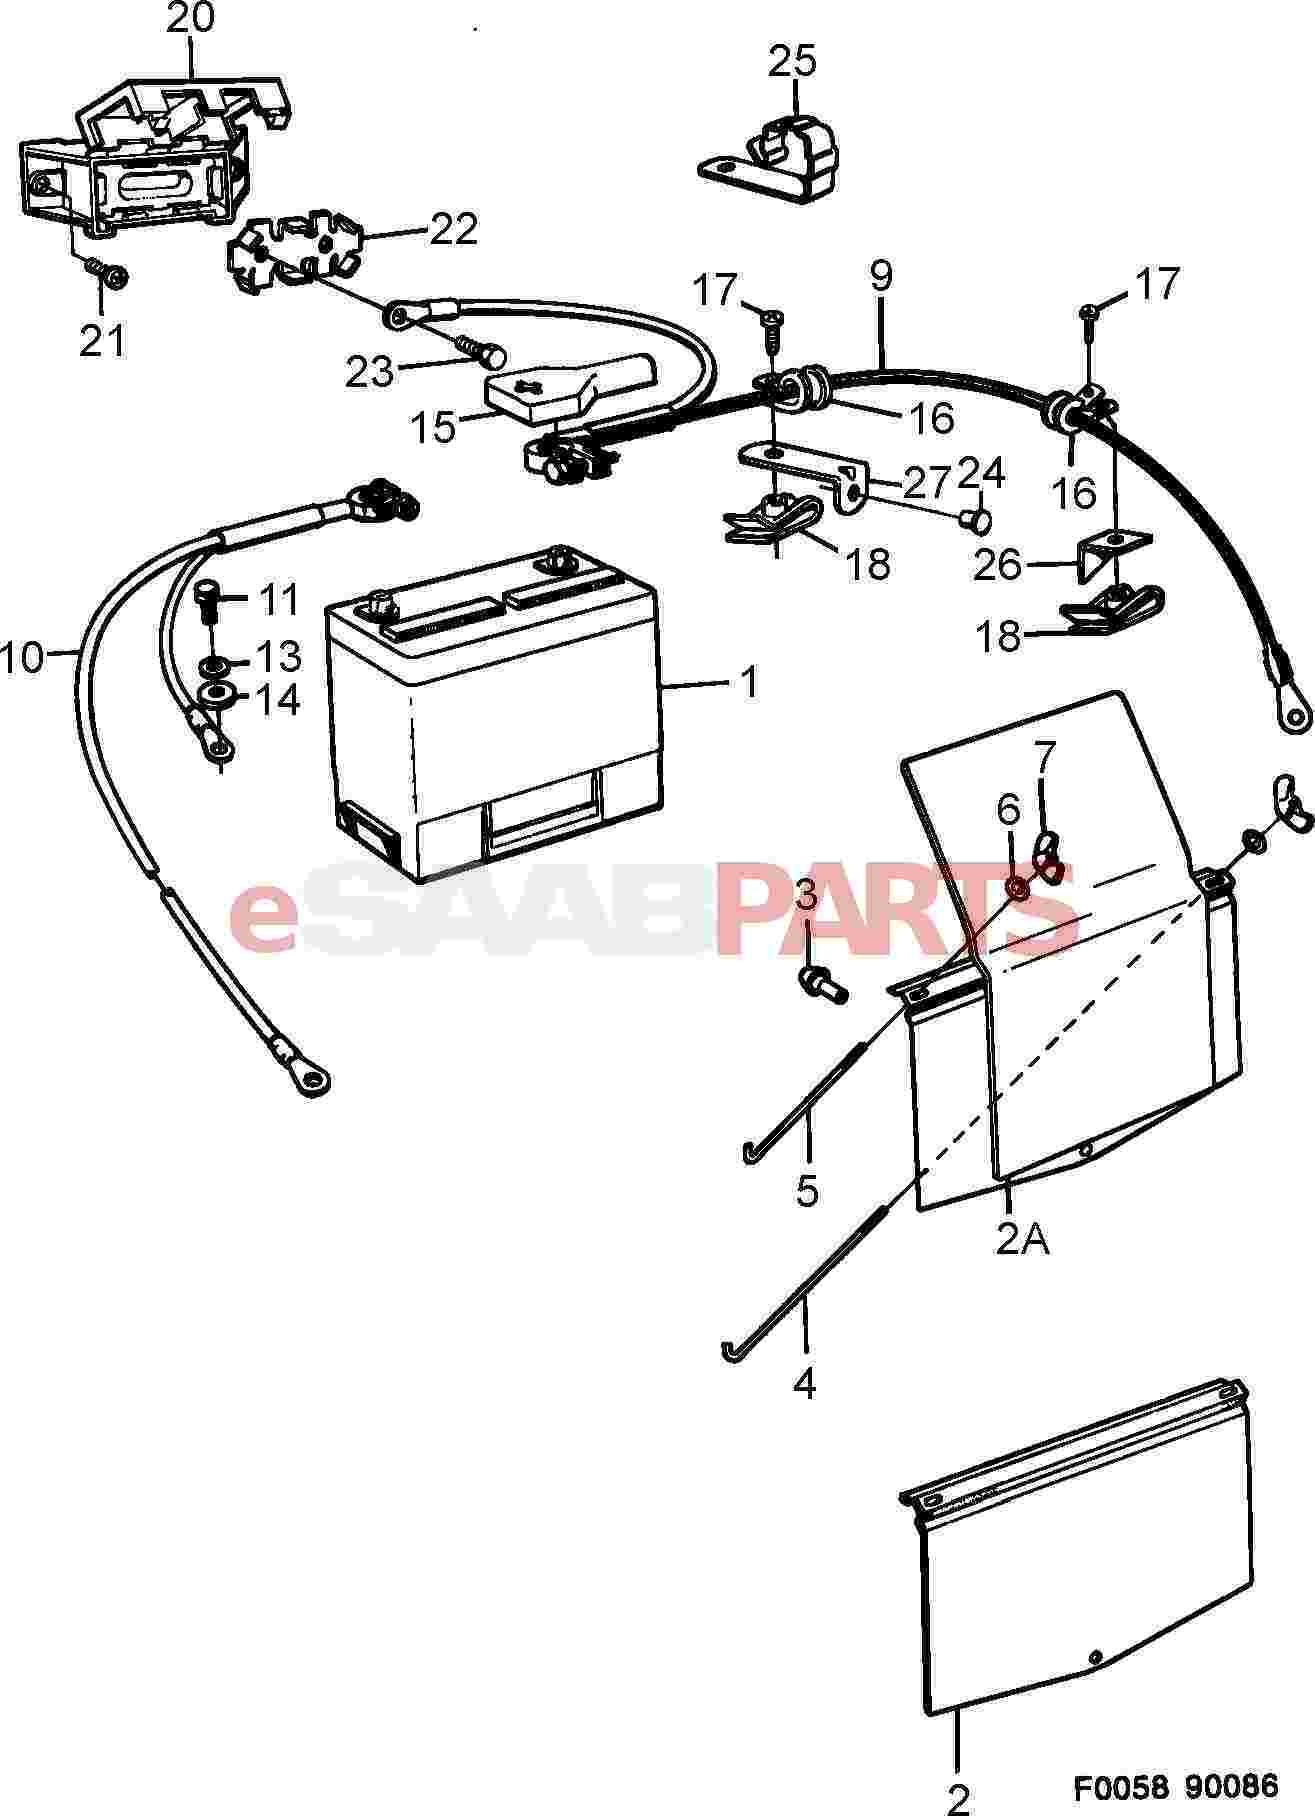 Saab 900 Electrical Parts Alternator Related Wiring Diagram 1989 Battery